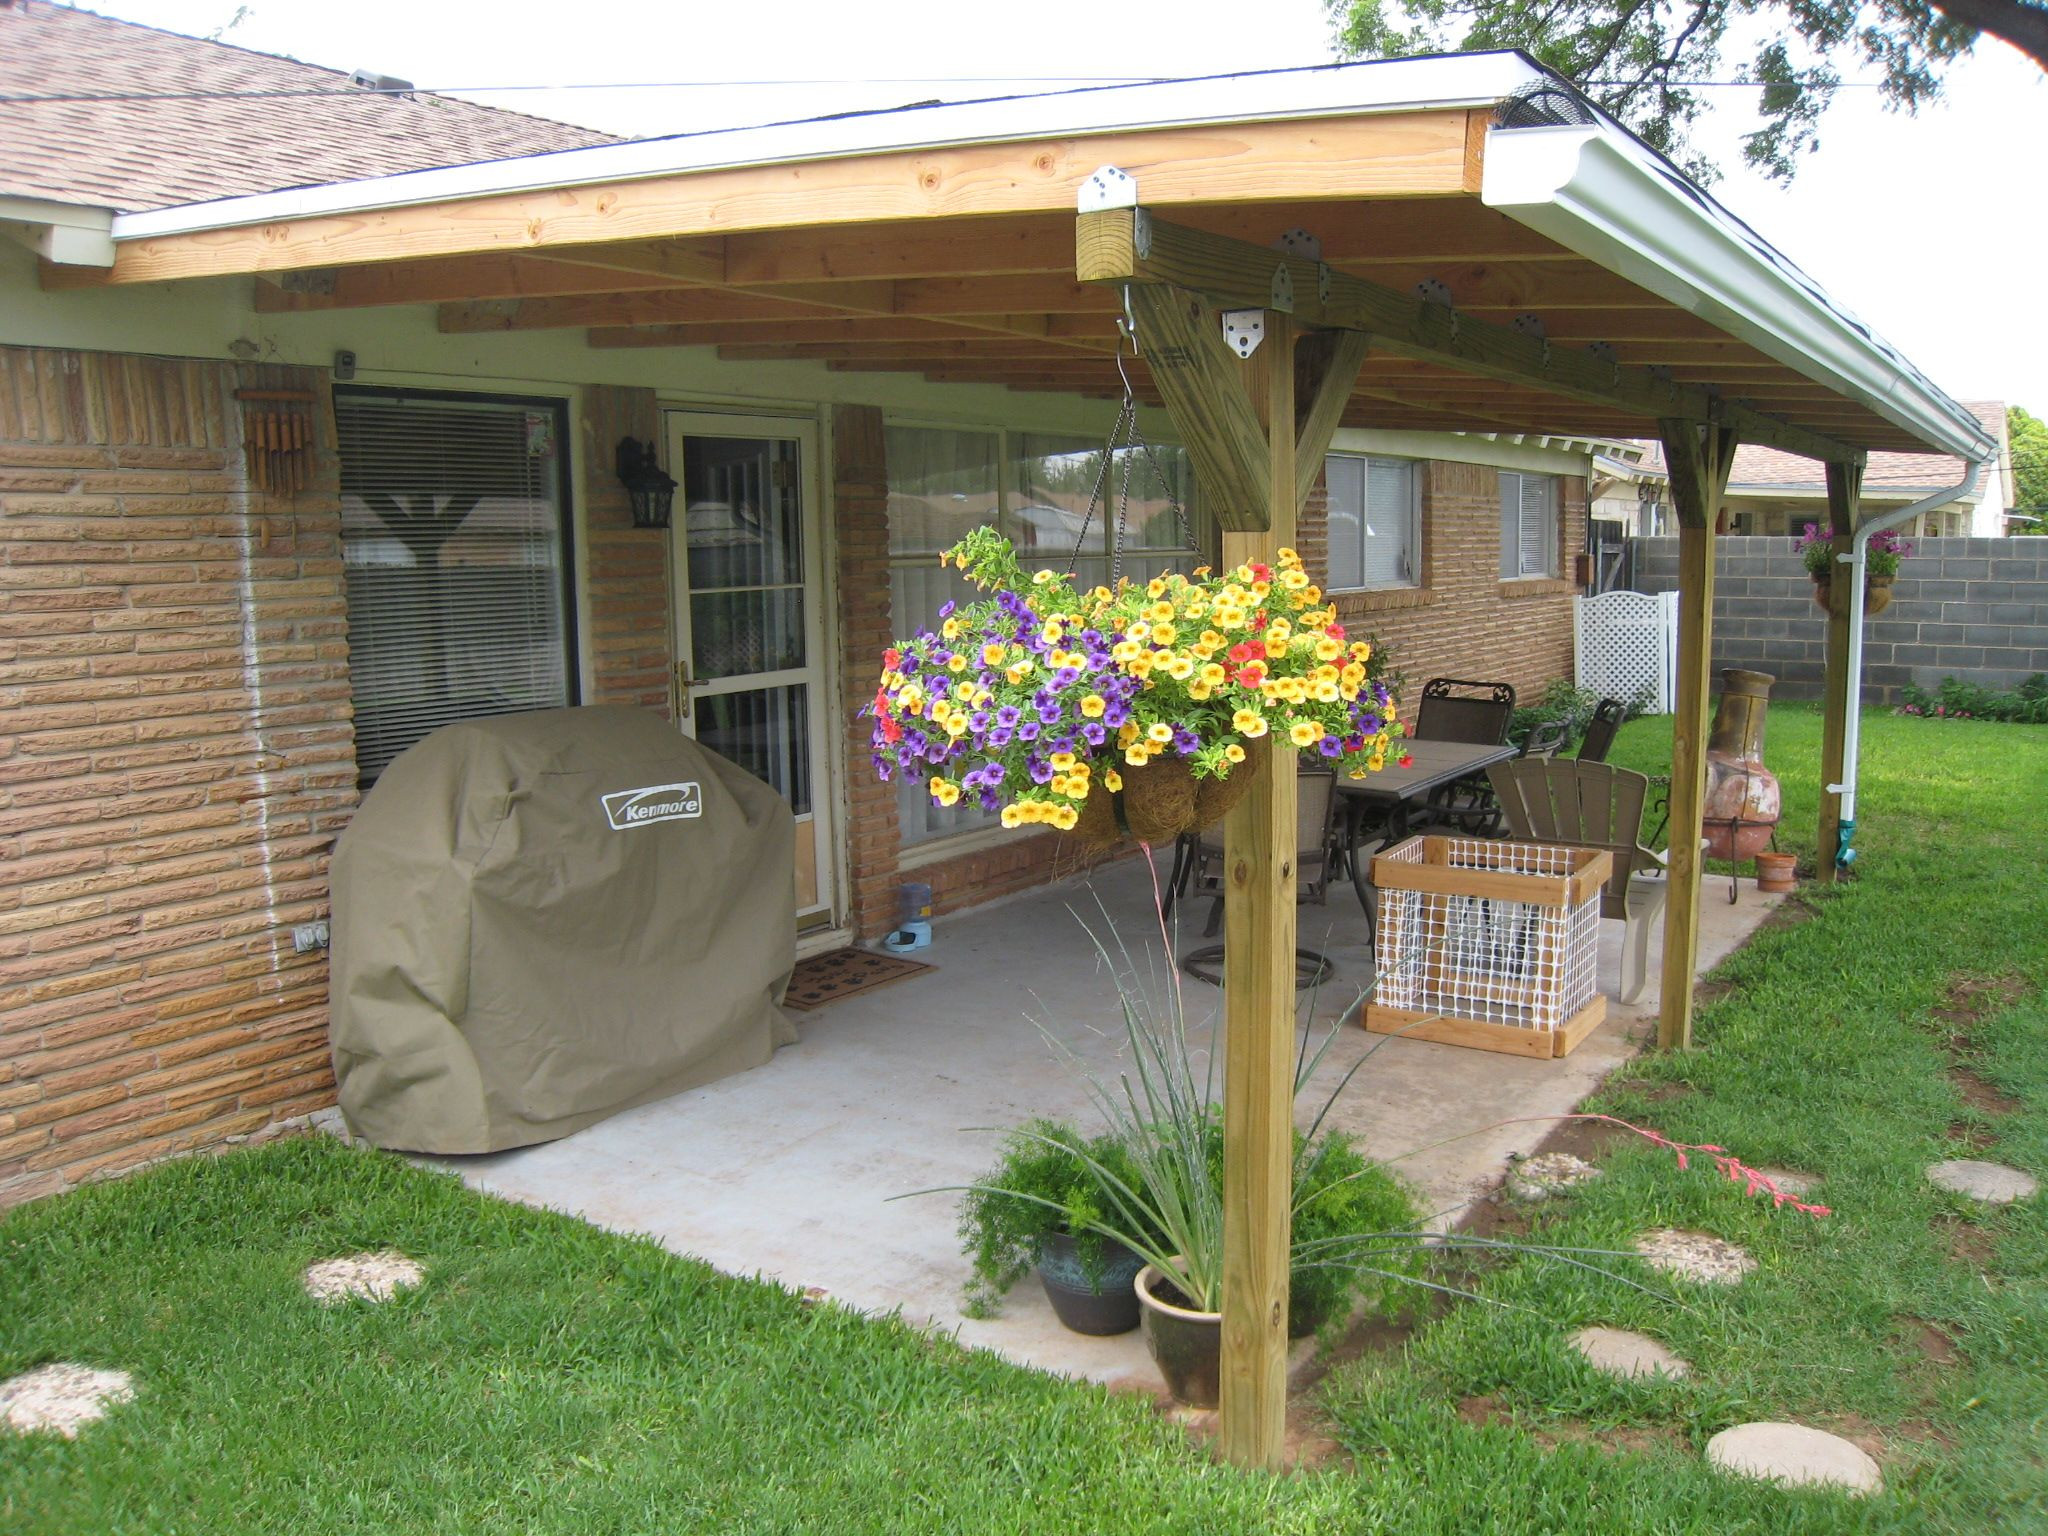 Patio Cover Plans DIY  July 2011 Runner up Winner Patio cover makeover